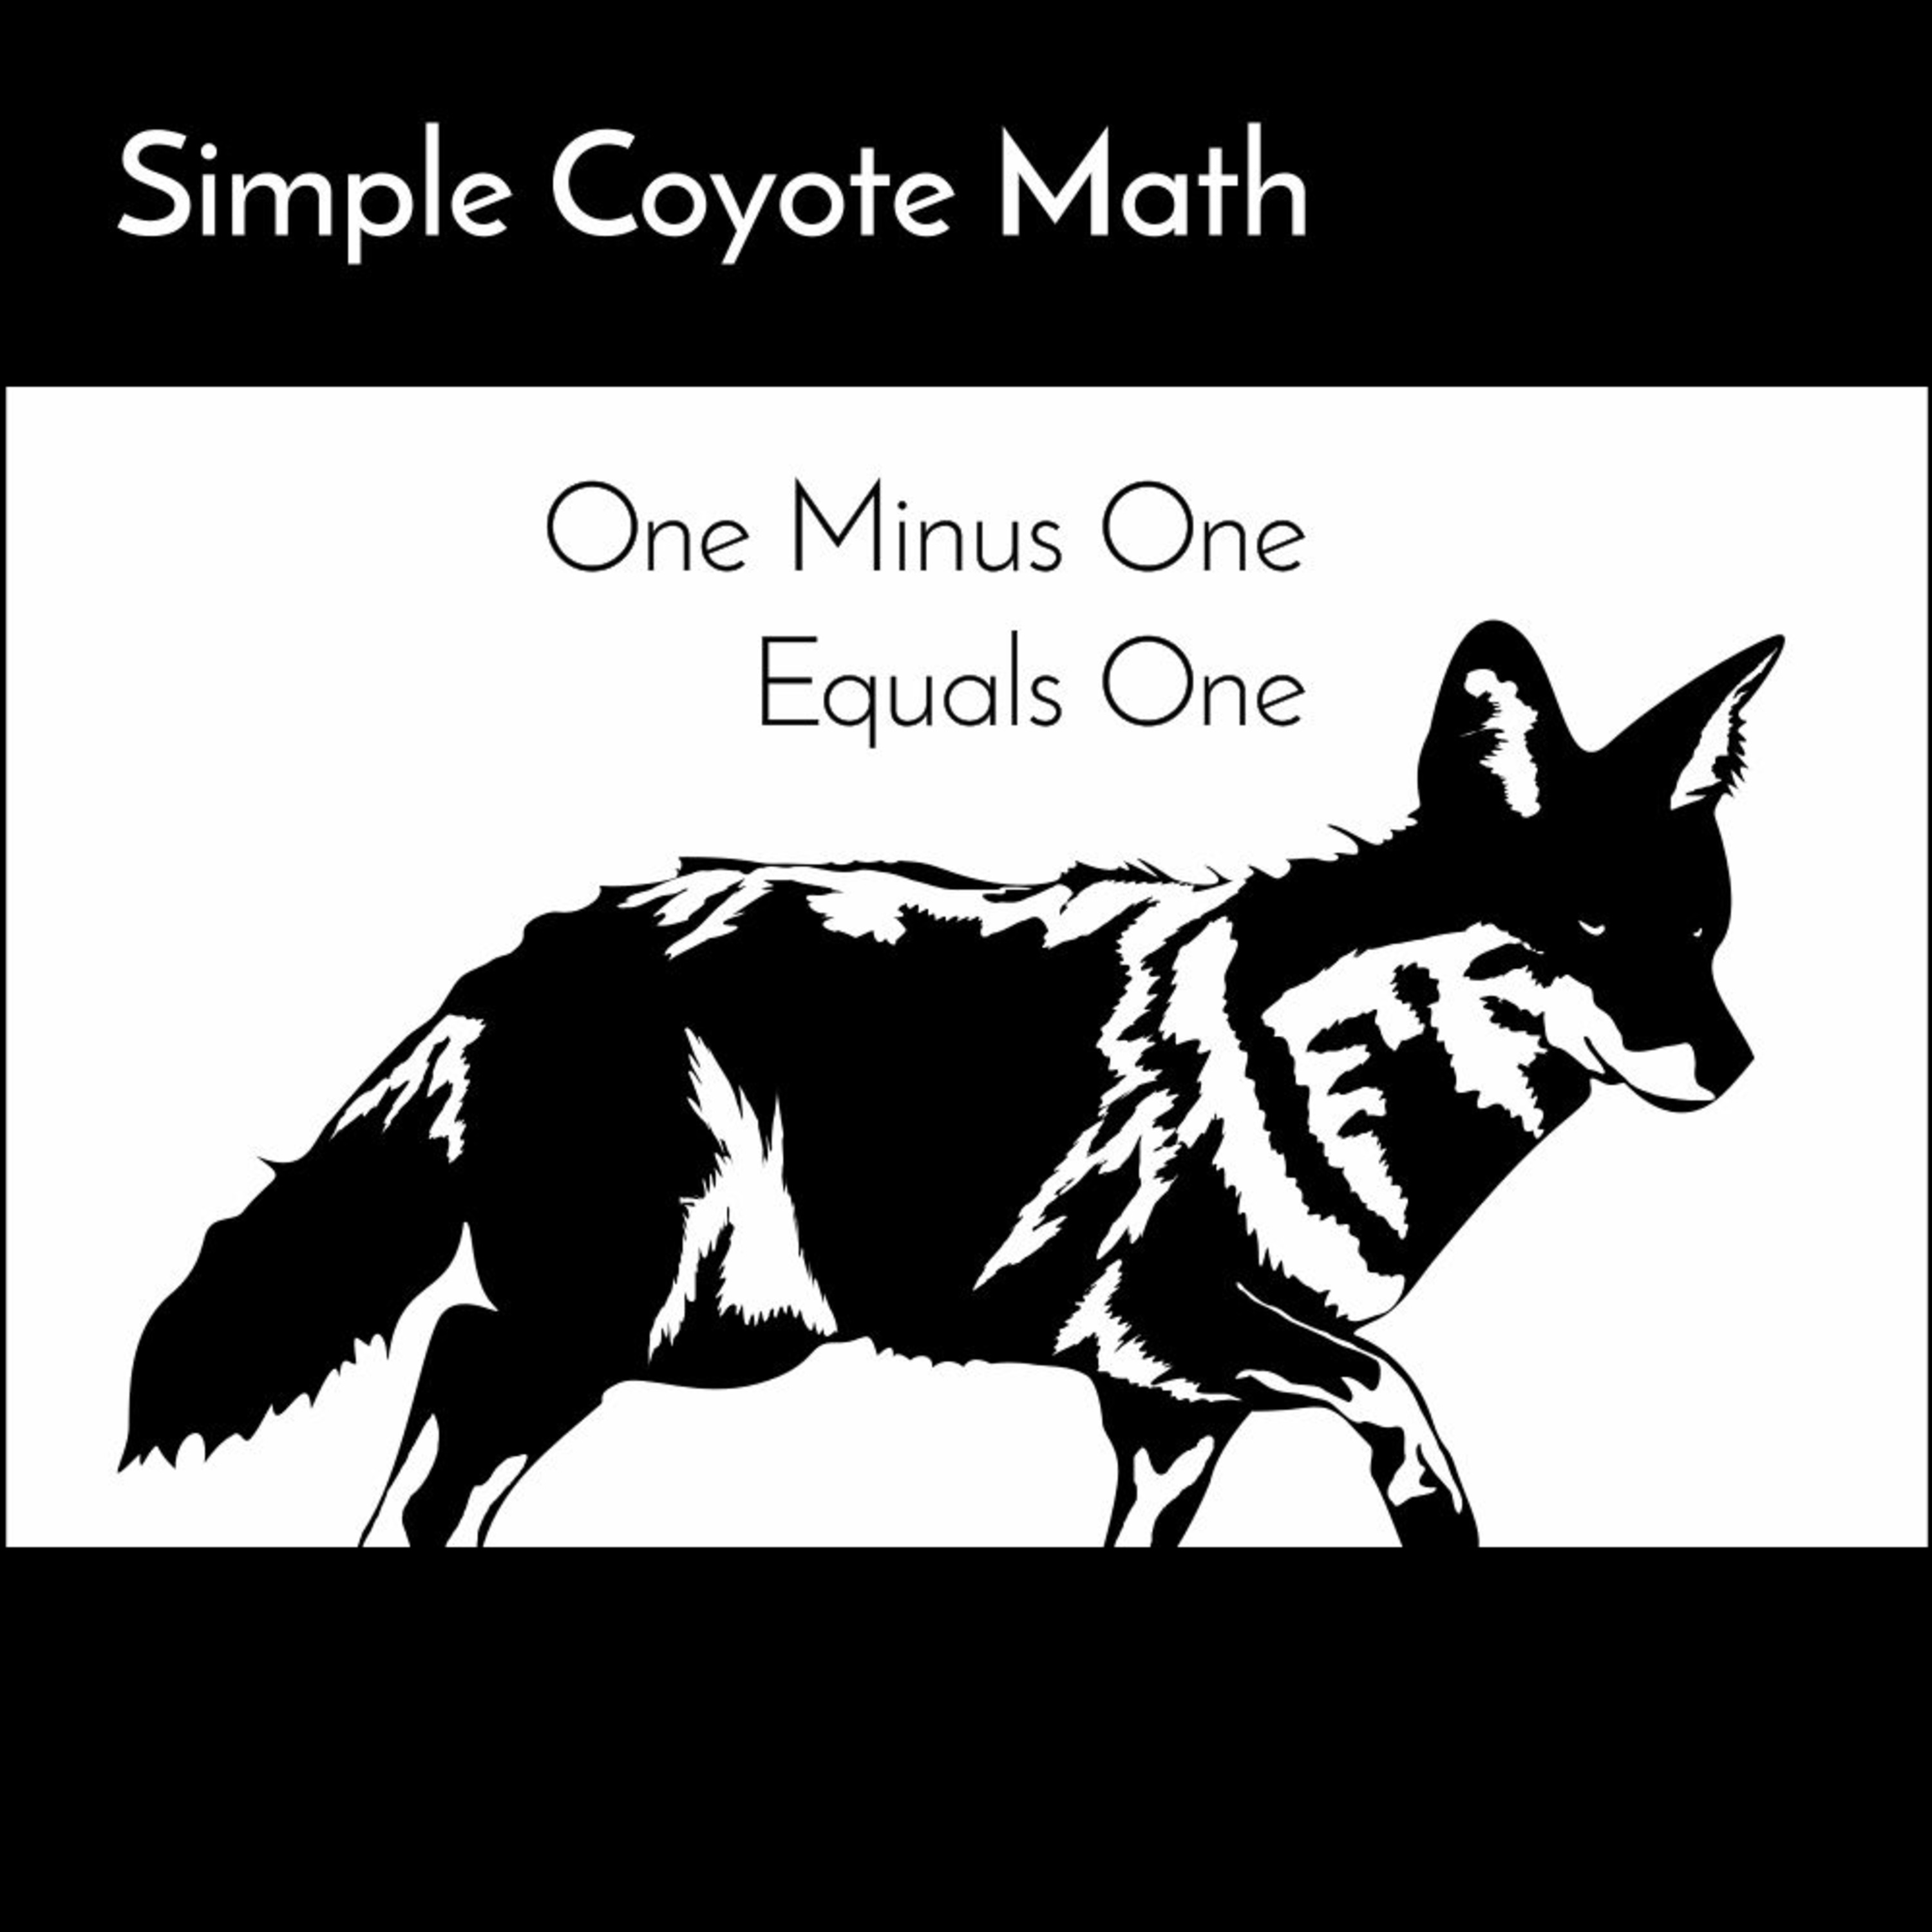 Simple Coyote Math, Part 2